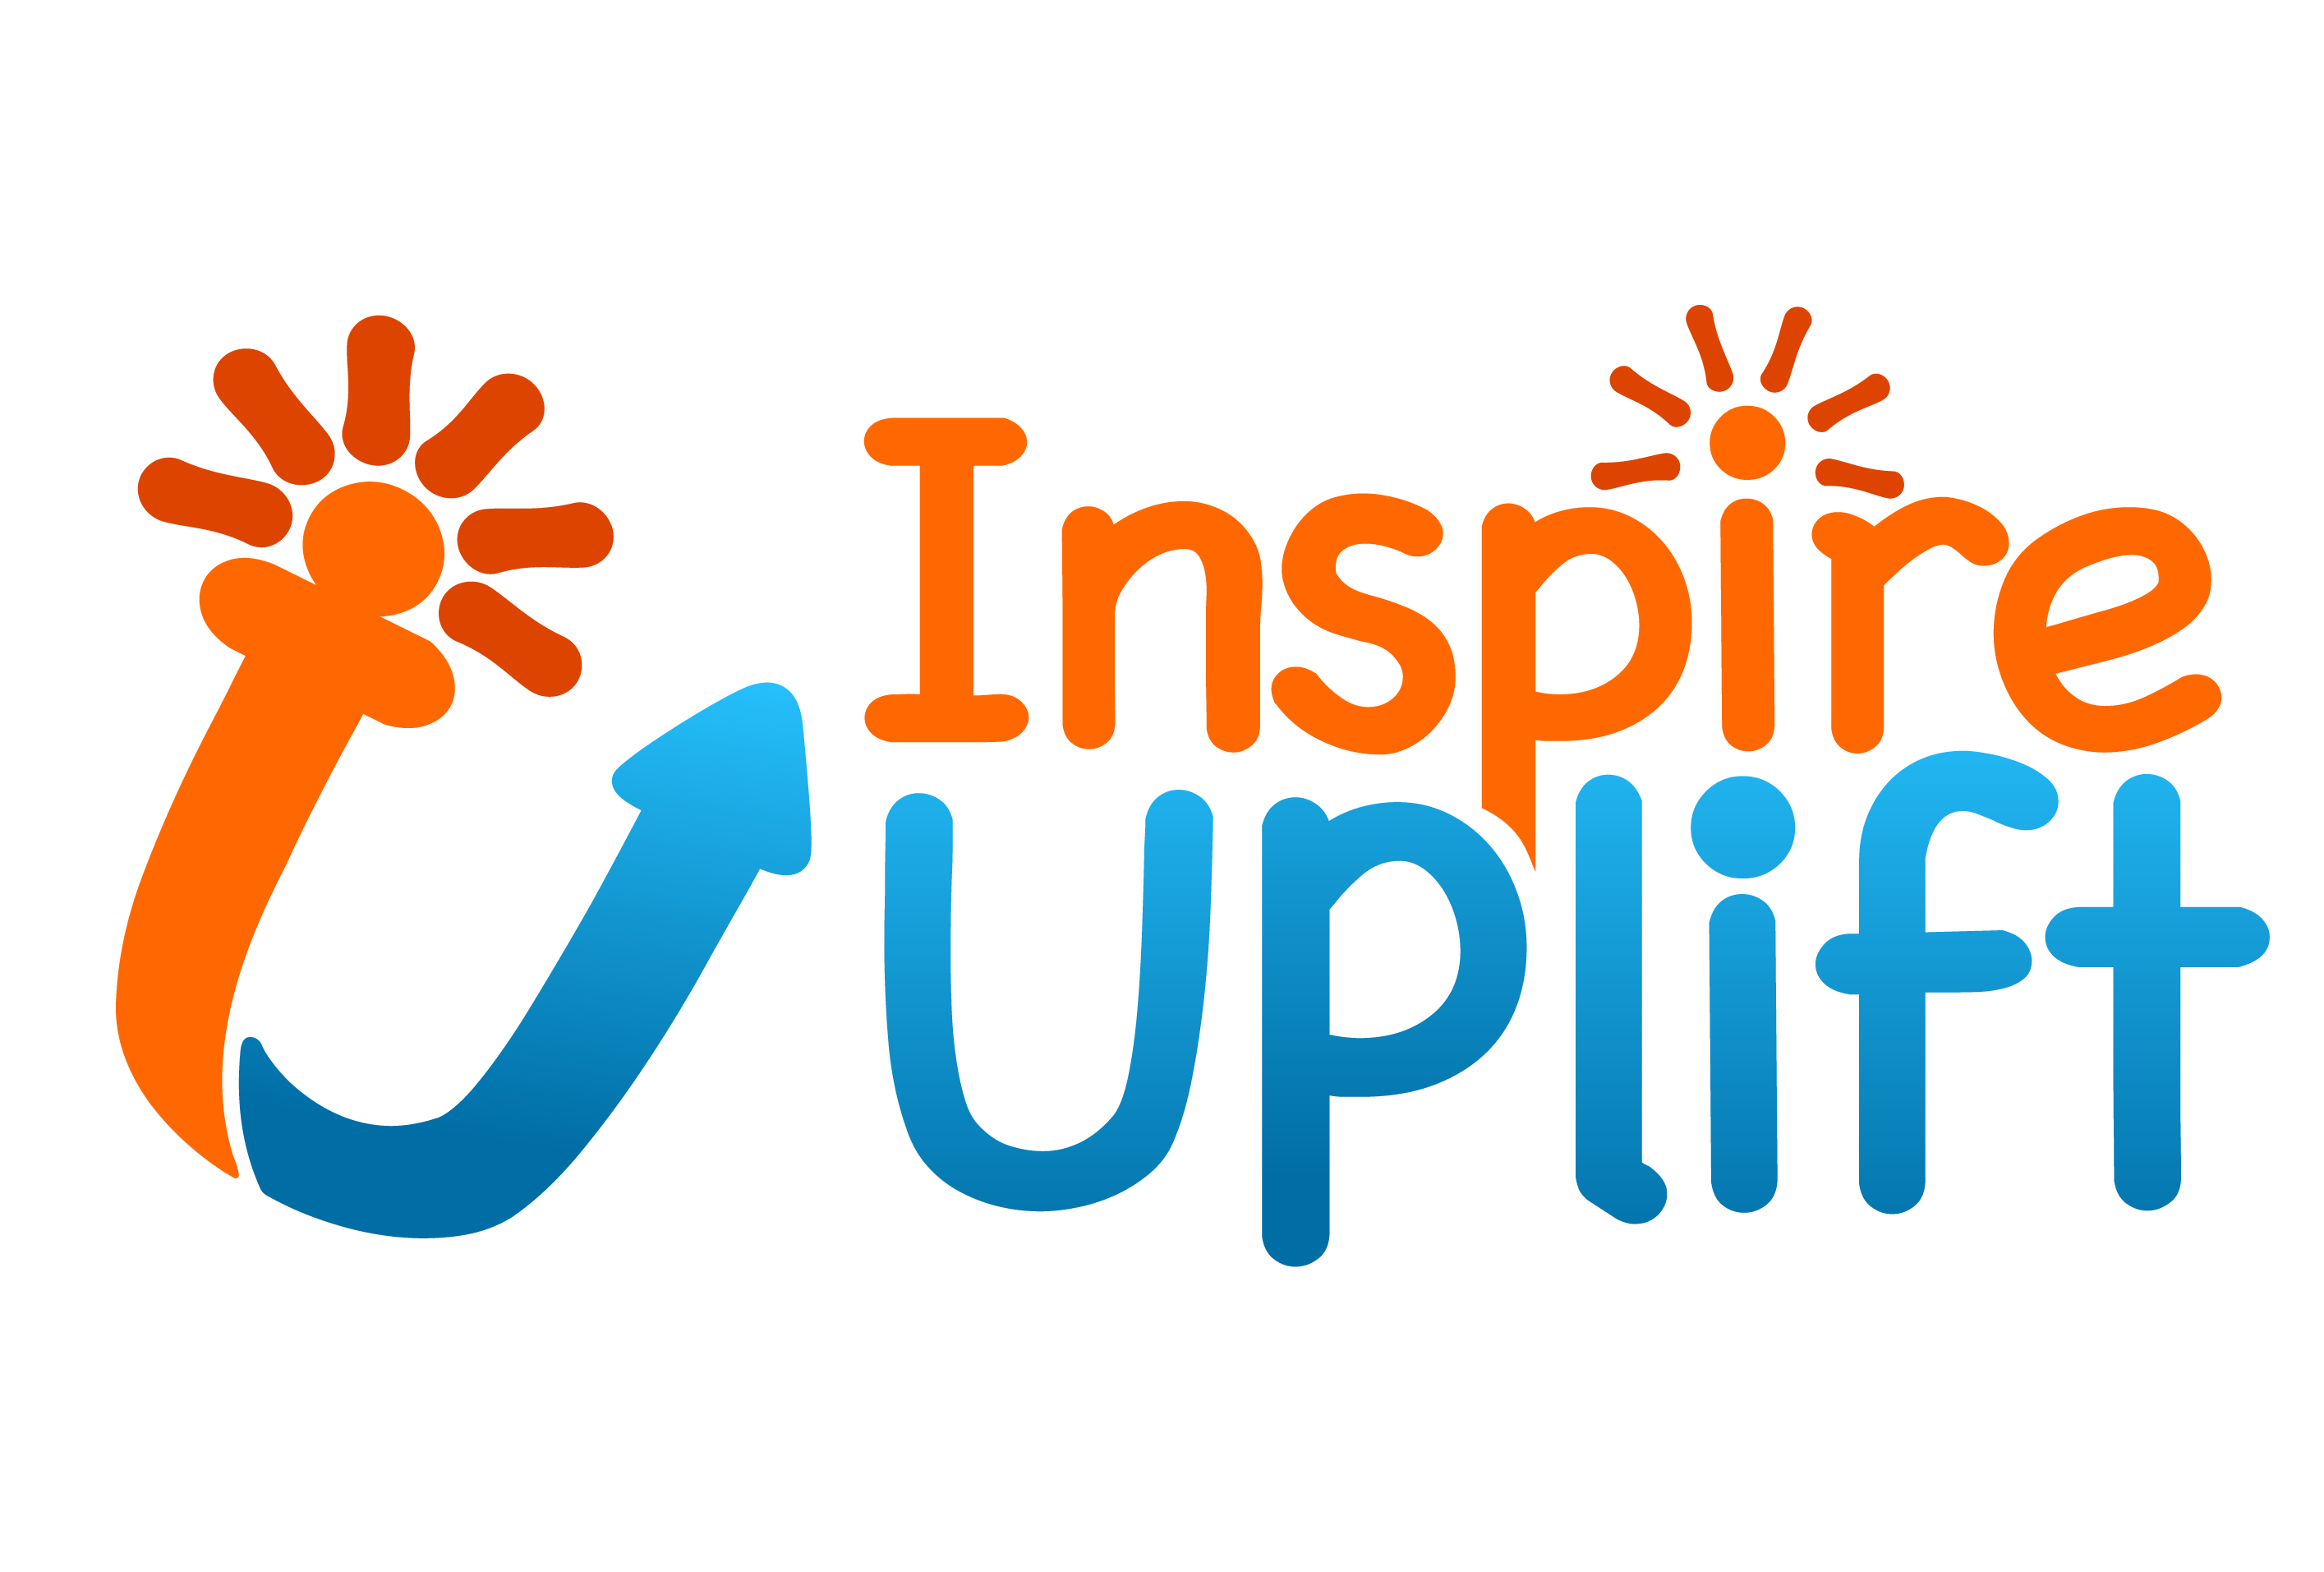 Inspire Uplift - Help Center, FAQ & Customer Support Help Center home page